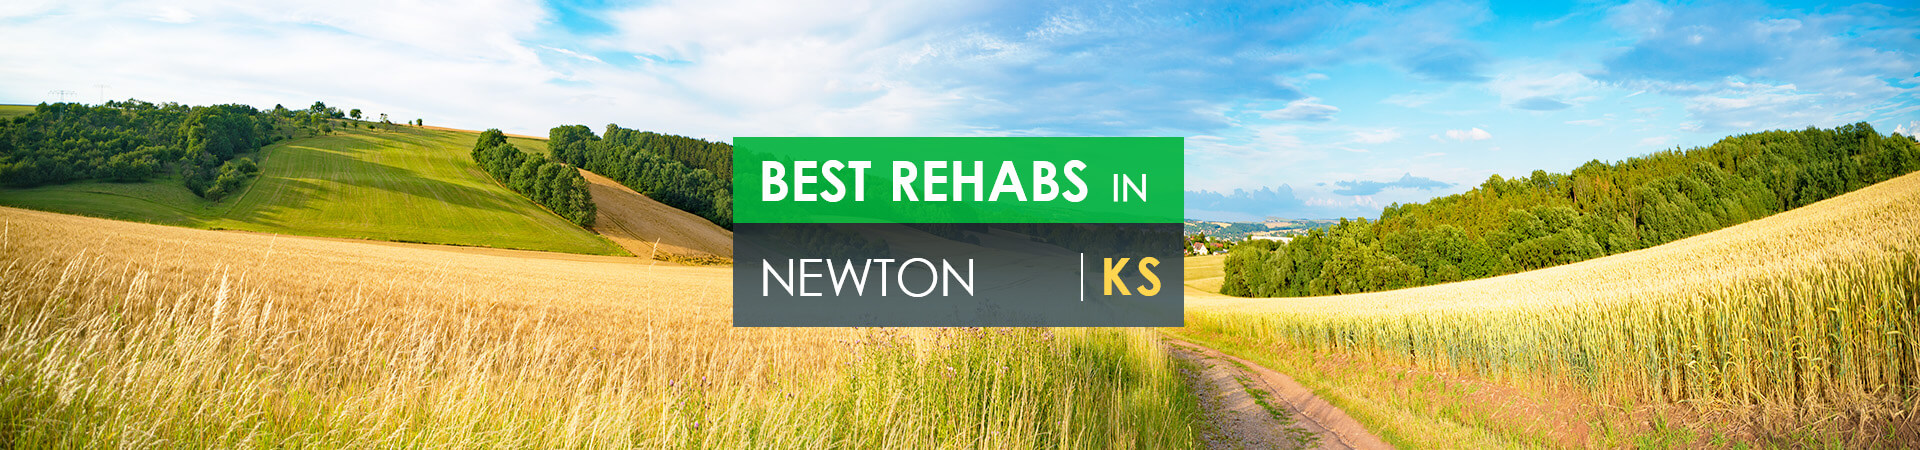 Best rehabs in Newton, KS